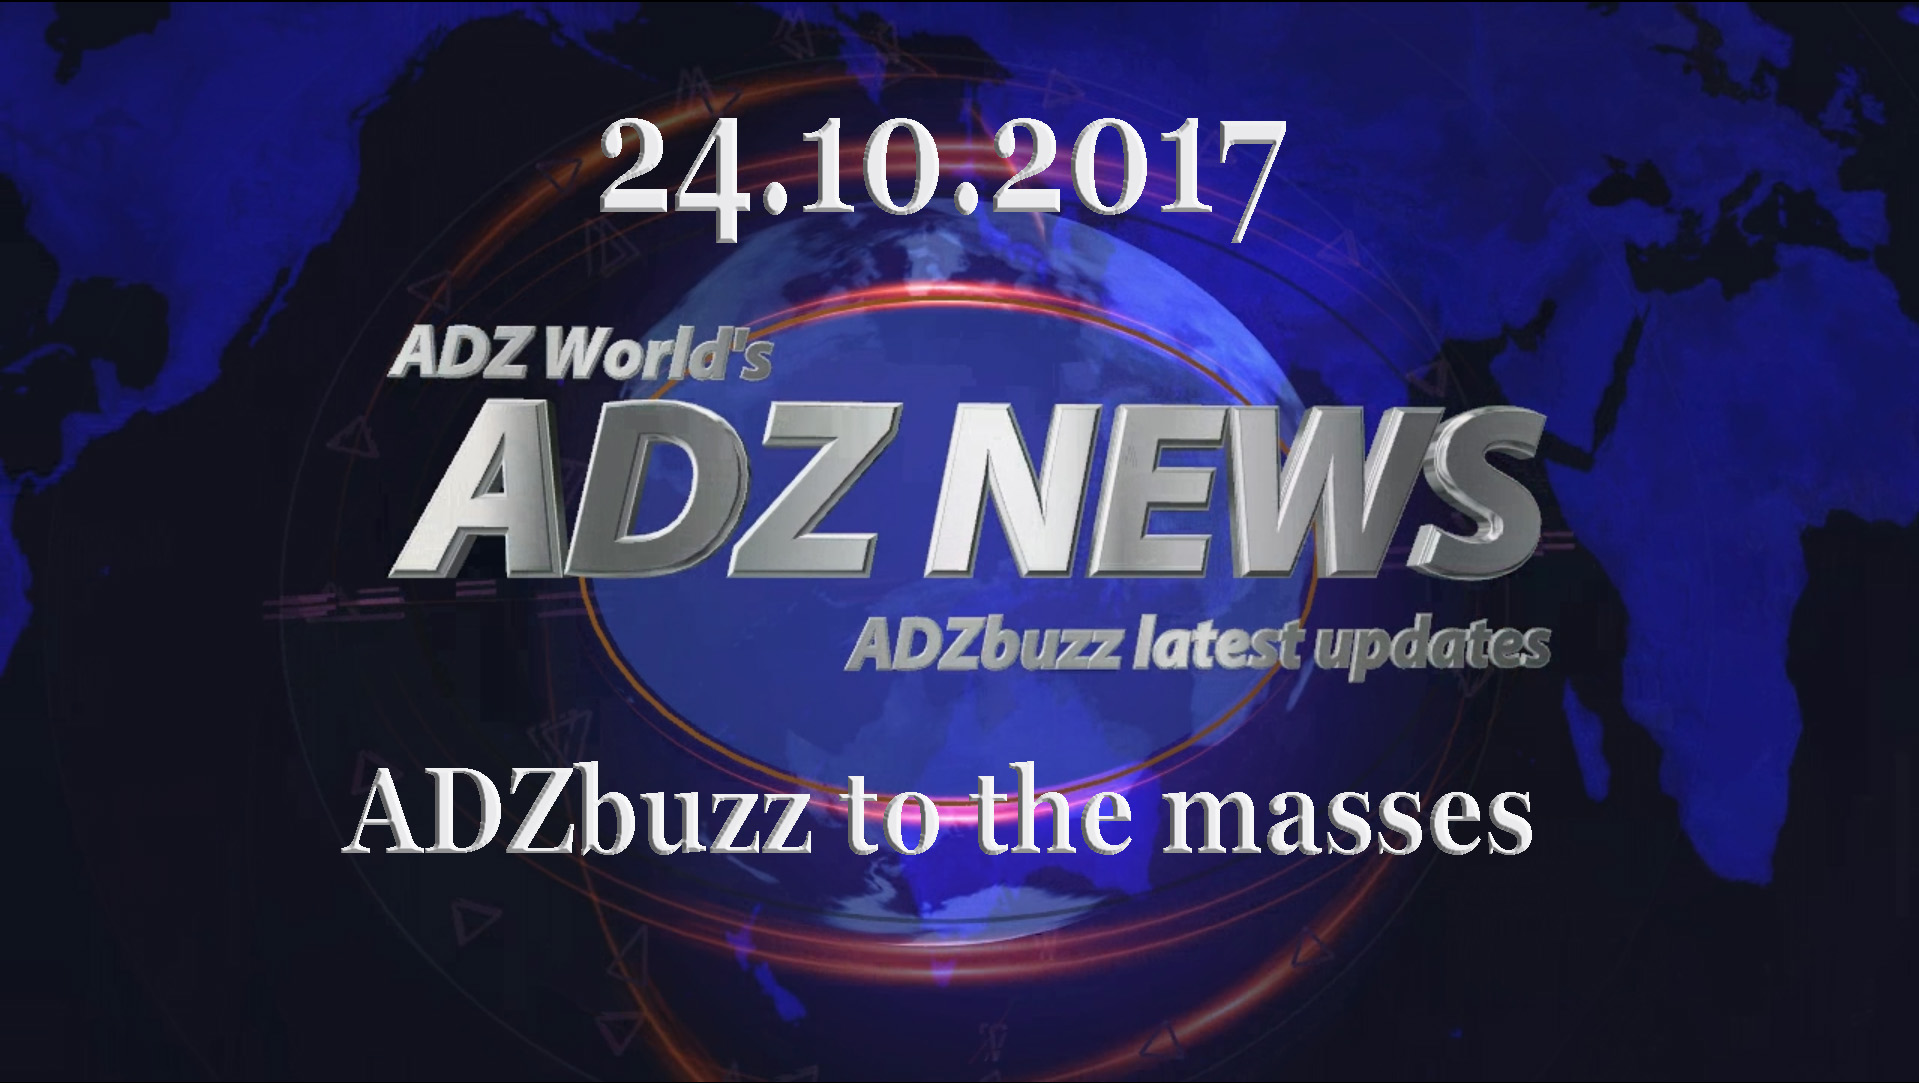 ADZ News 24.10.2017 – ADZbuzz to the masses